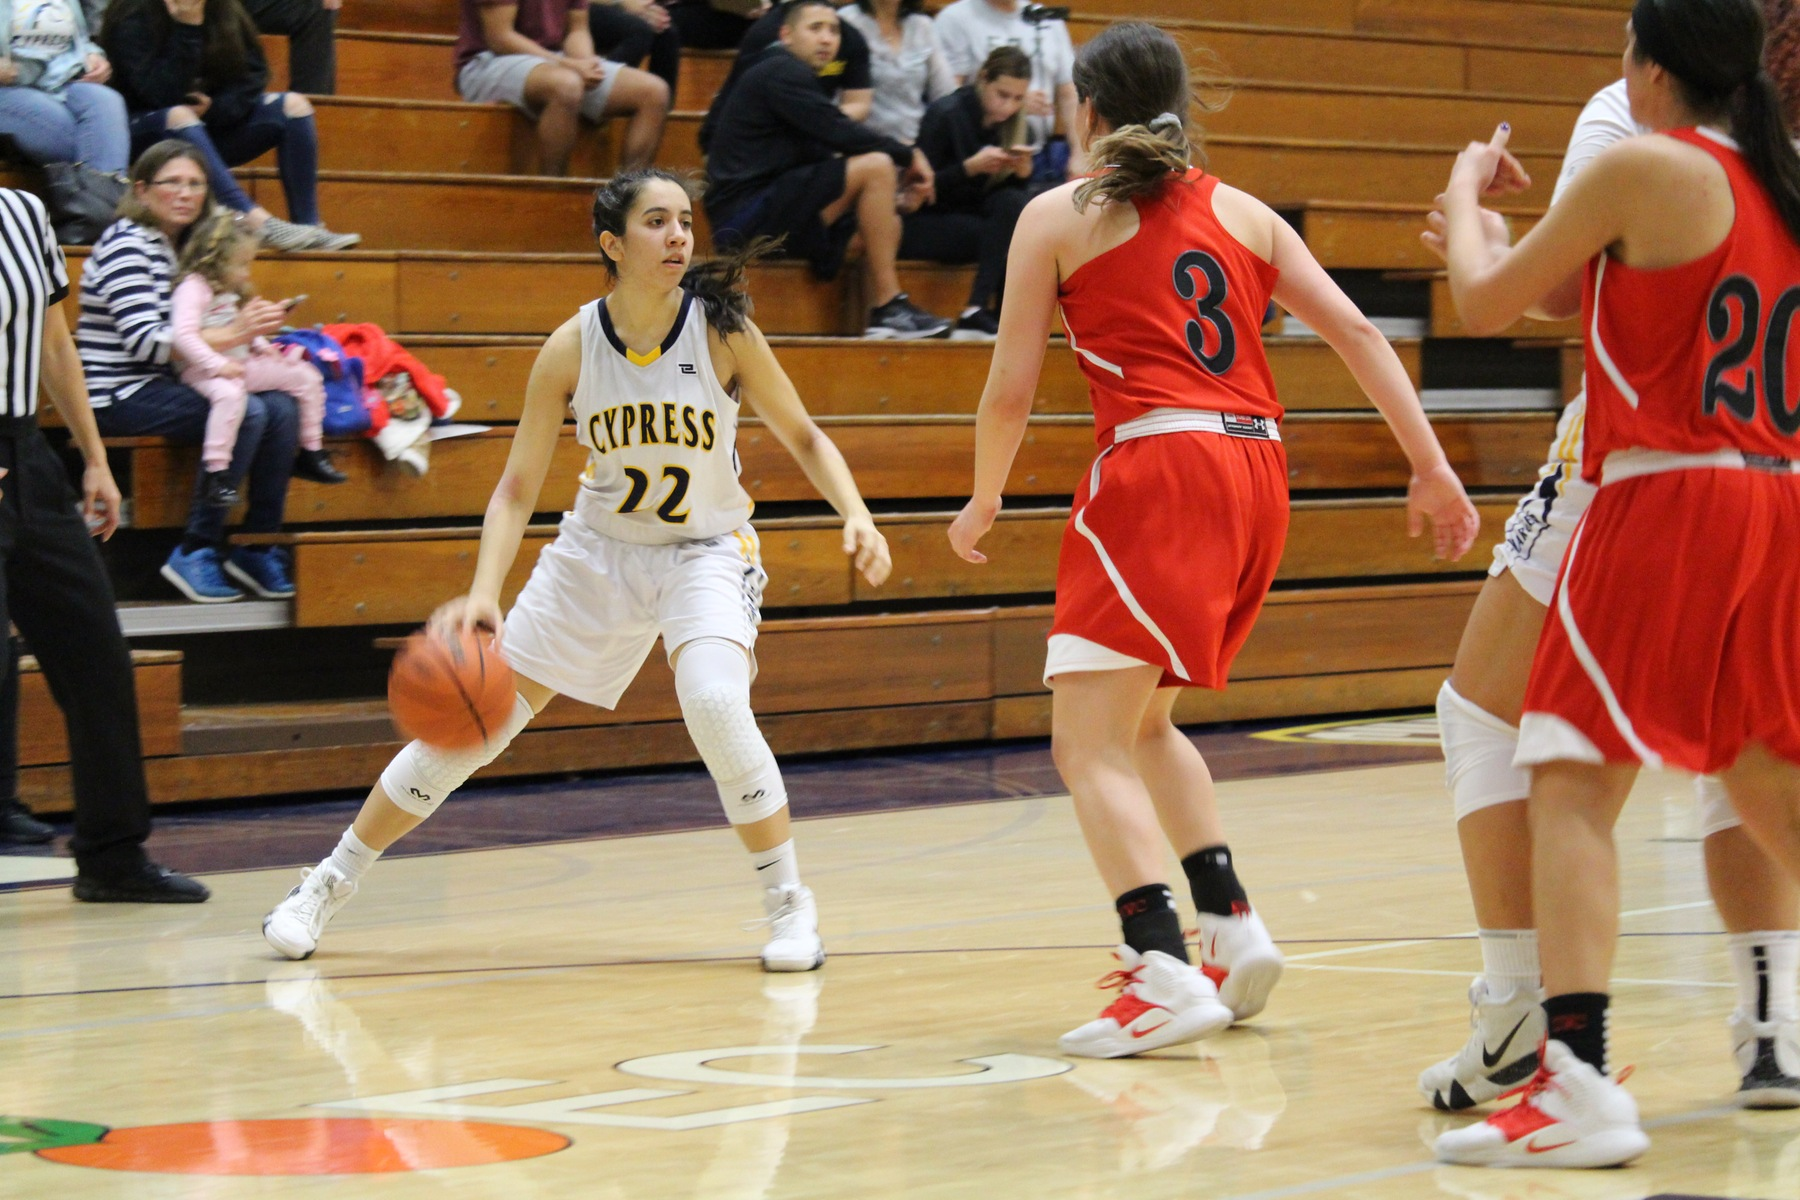 No. 14 Lady Chargers Set for SoCal Regional Showdown with No. 3 East LA